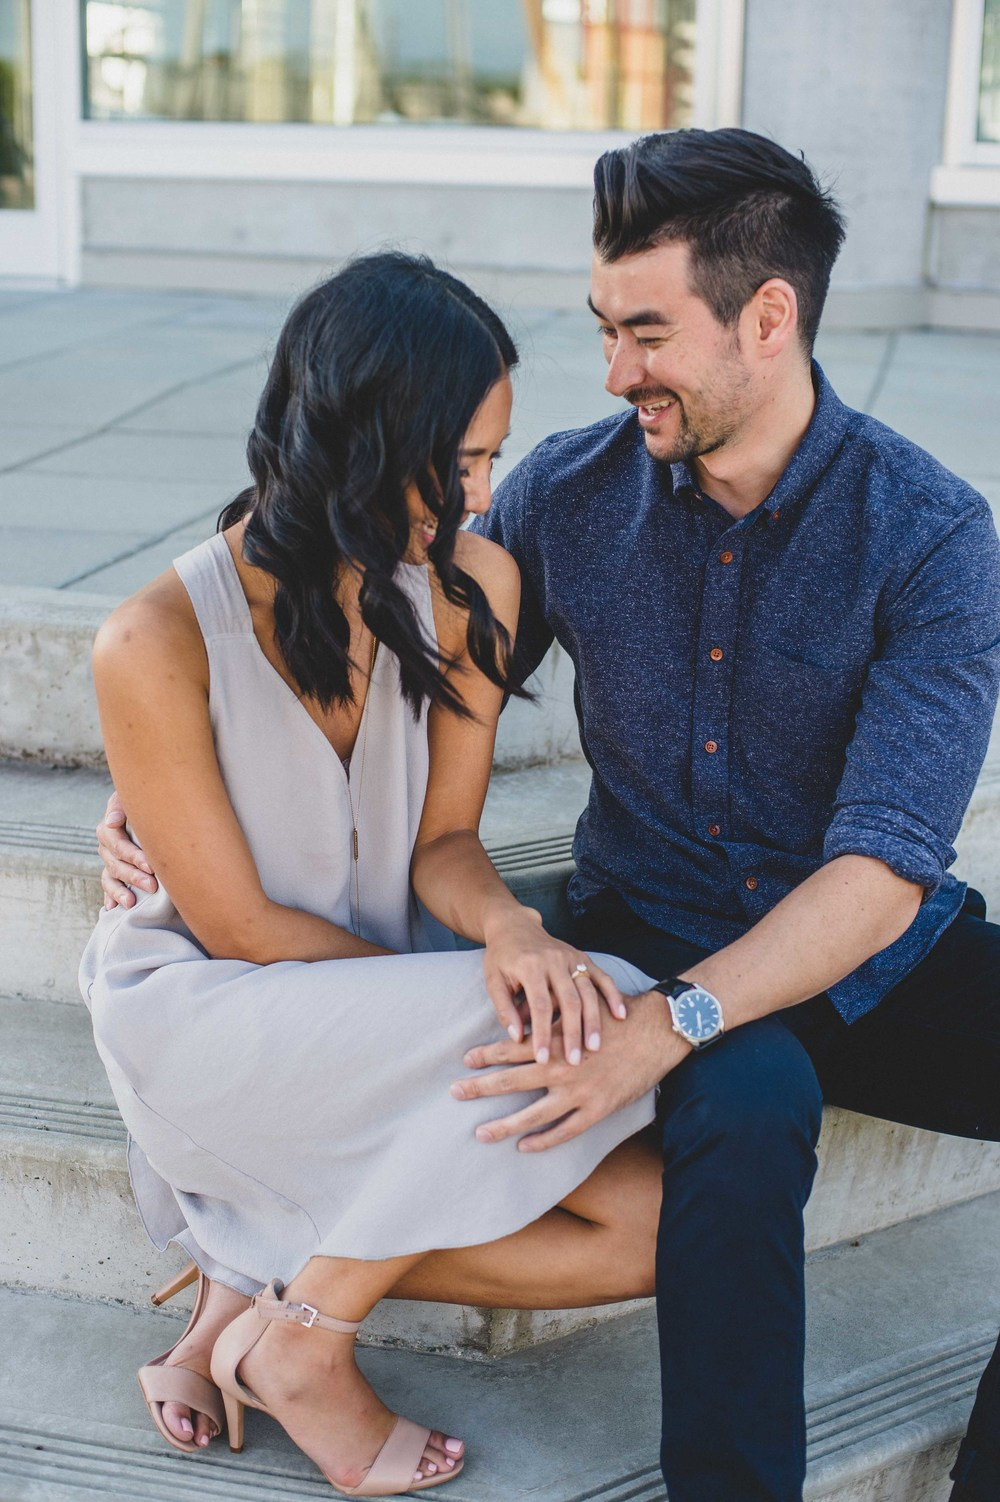 Vaccouver Steveston engagement photography Edward Lai Photography-5.jpg